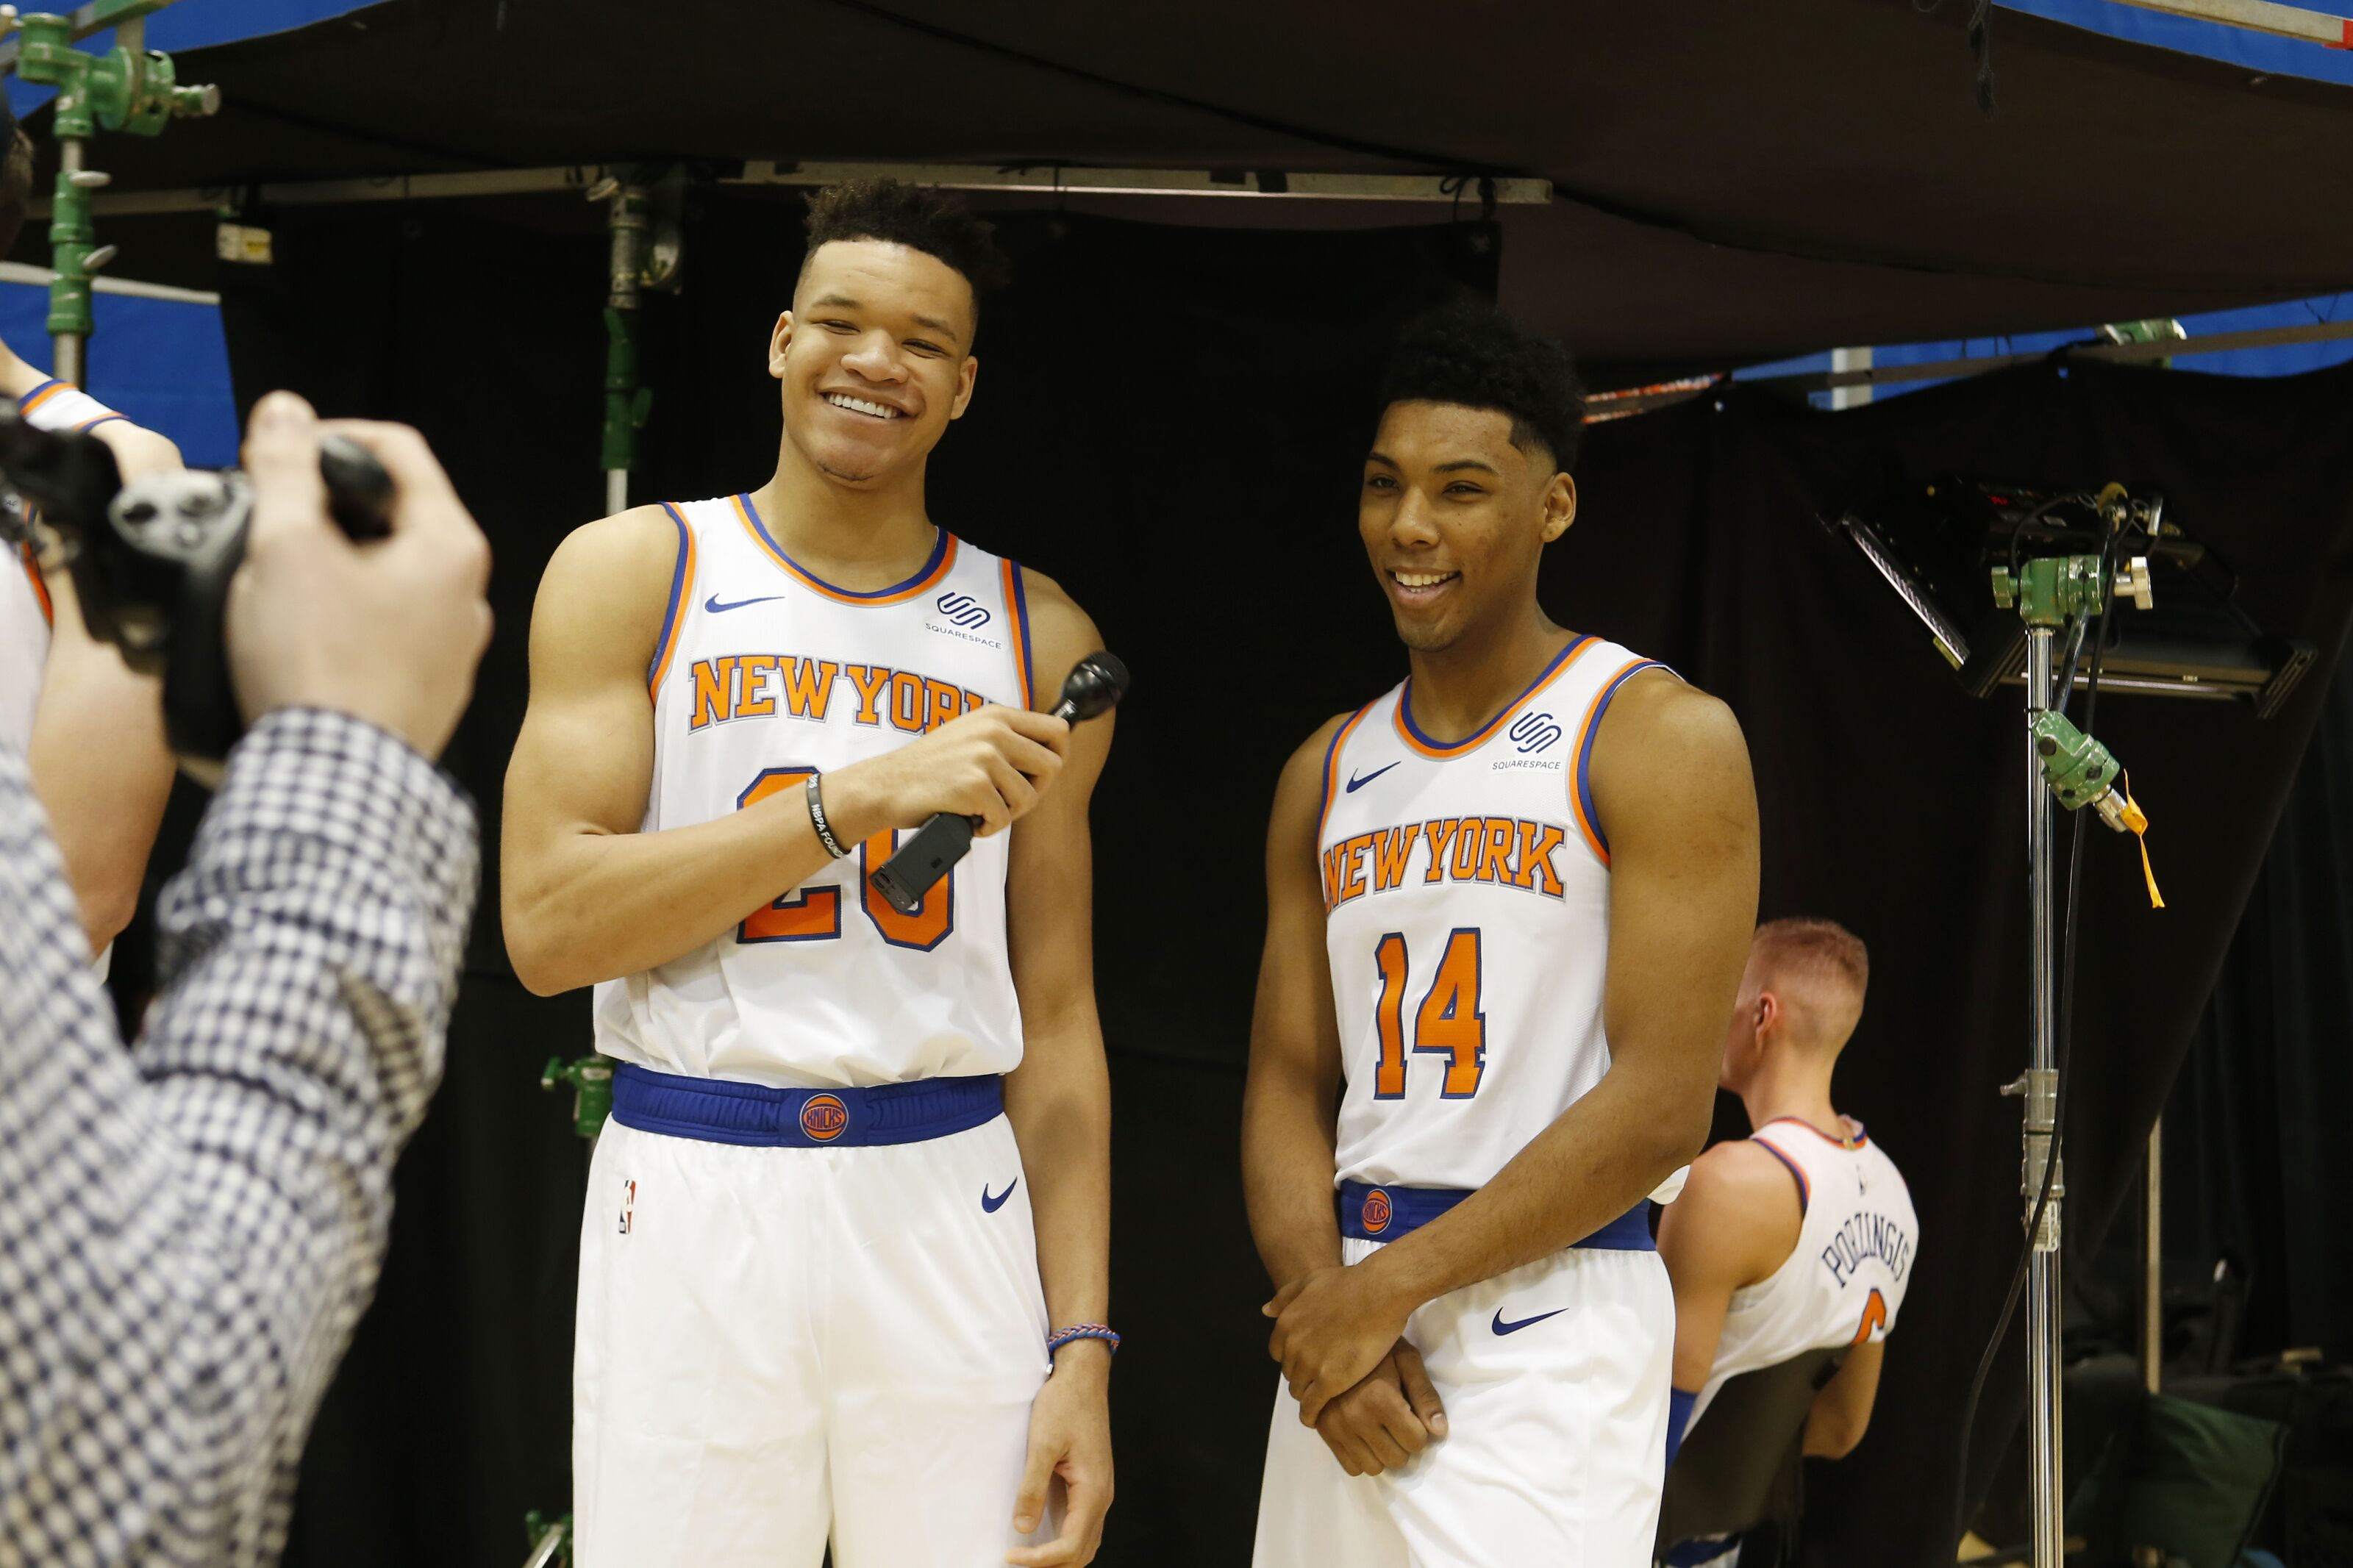 New York Knicks: When is Media Day 2019?